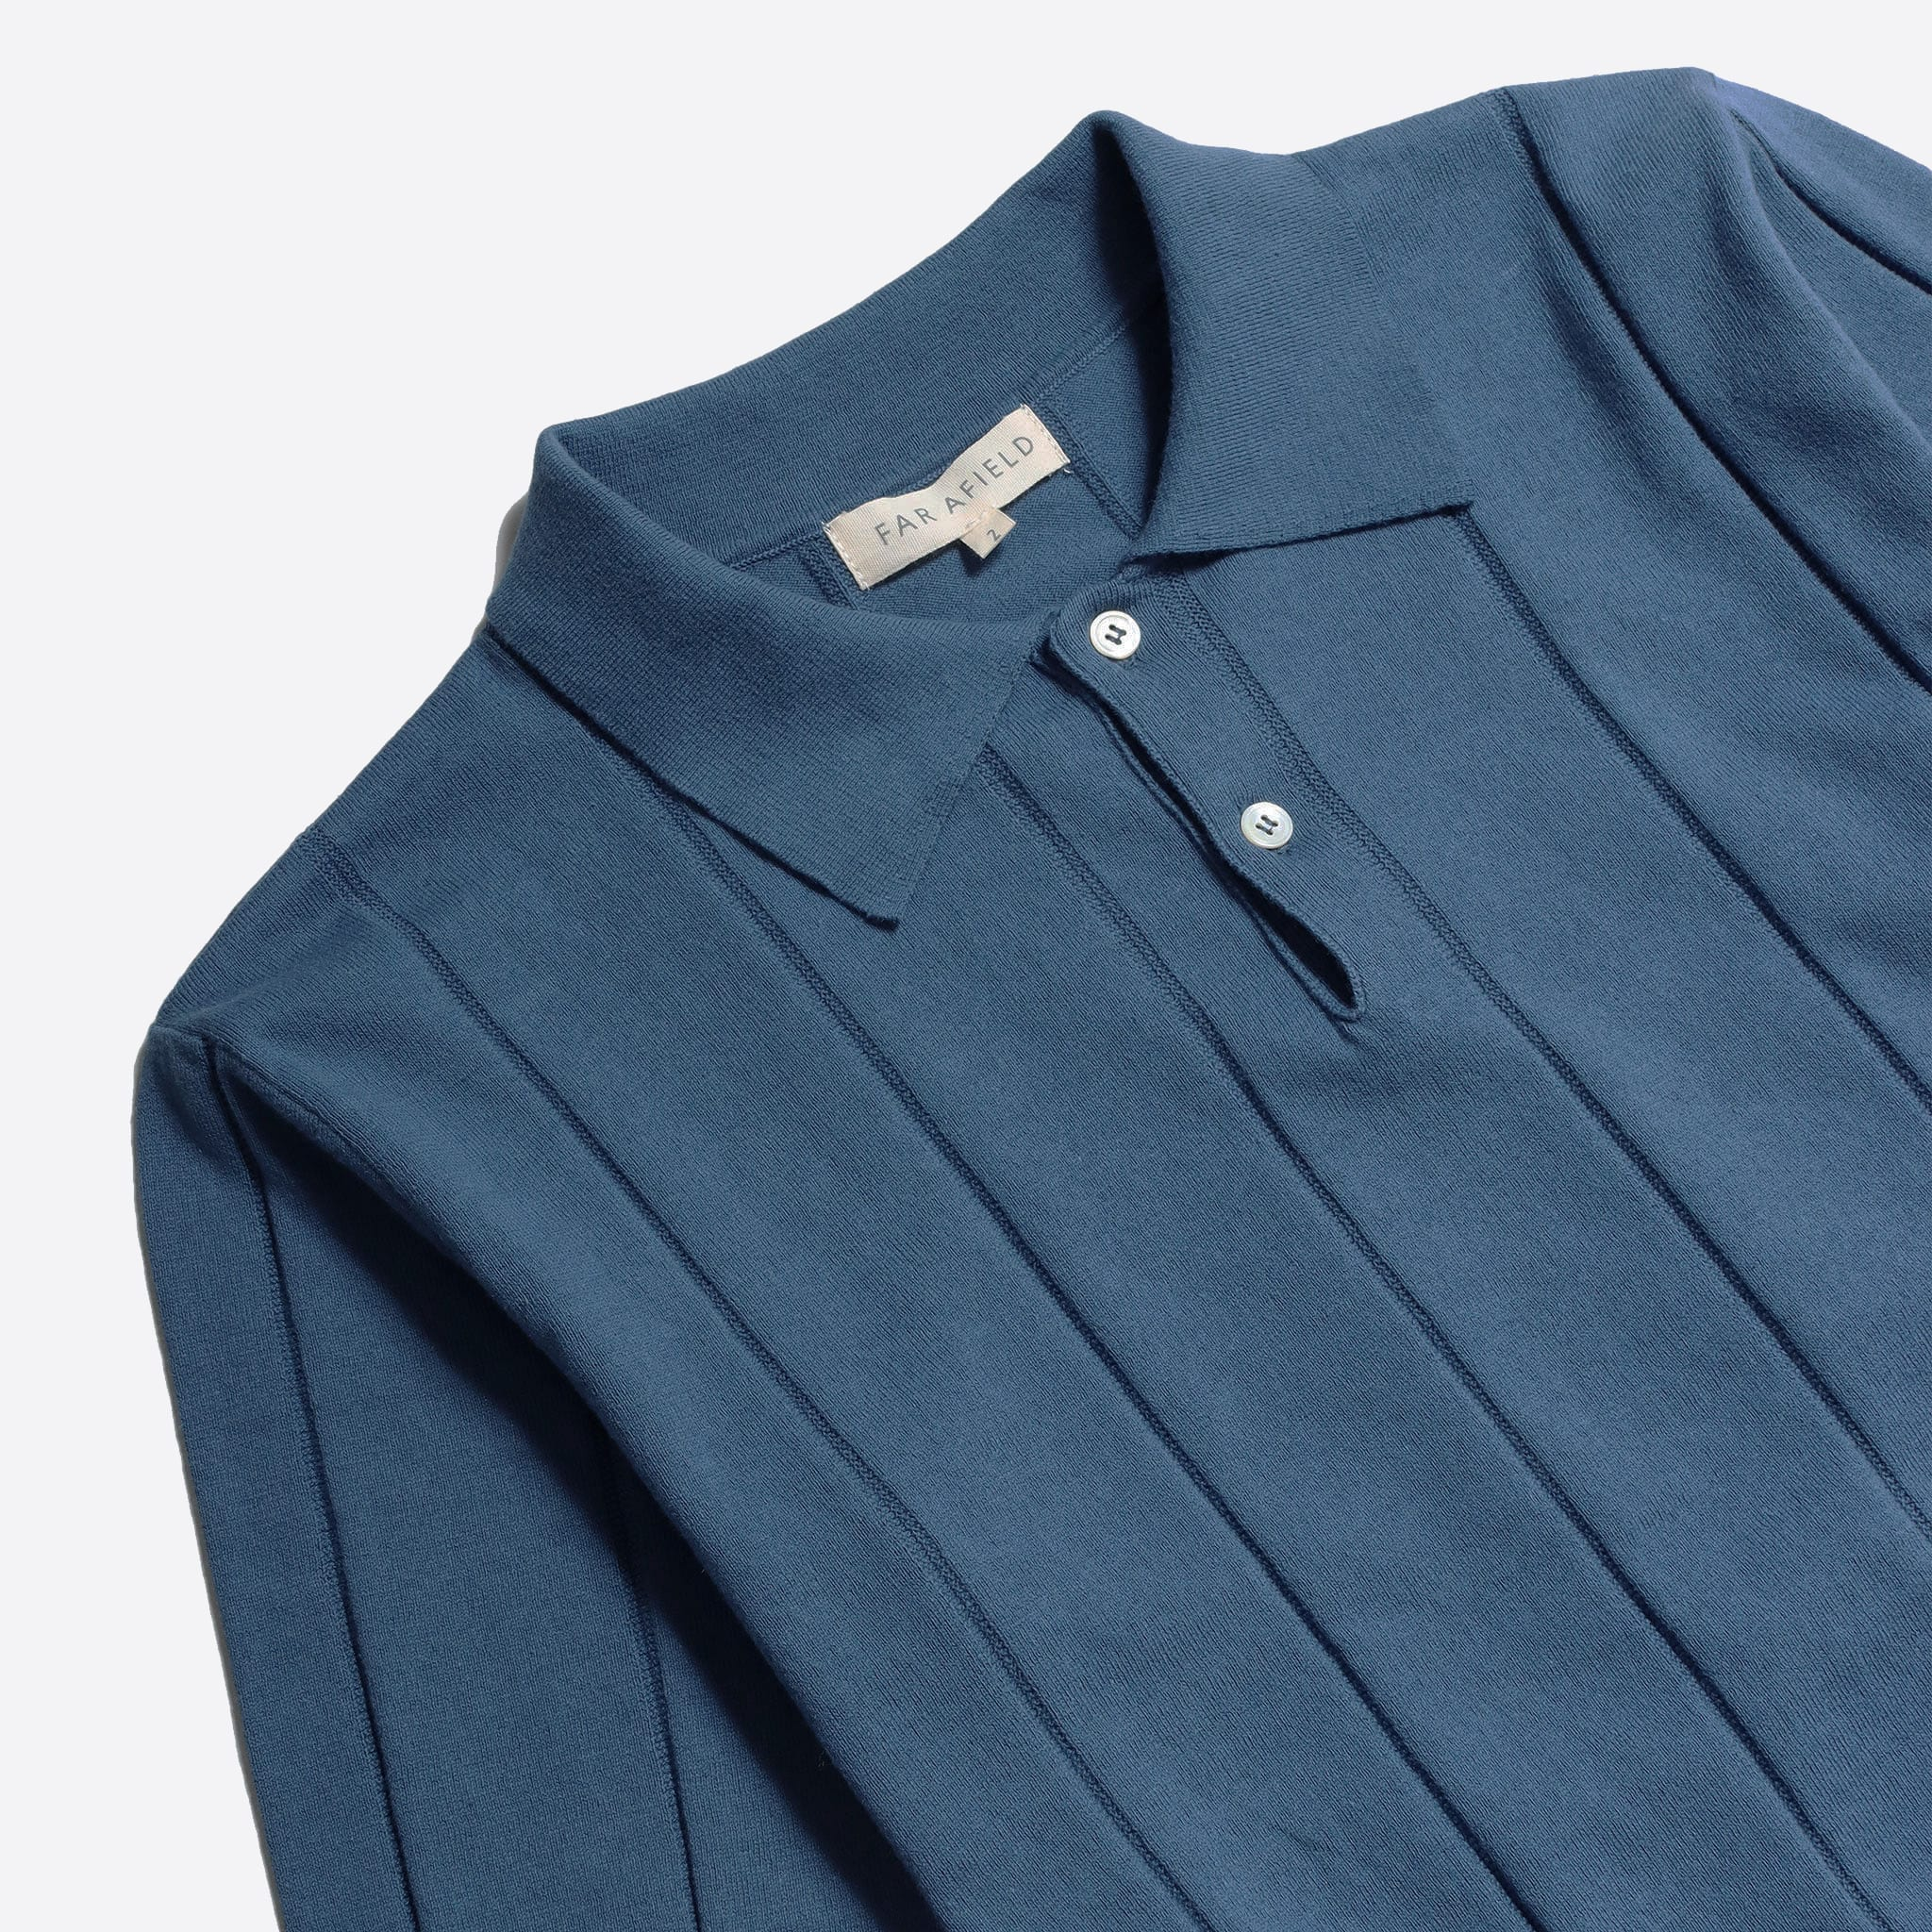 Far Afield Jacobs Short Sleeve Polo a Ensign Blue Organic Cotton FabricMid Century Inspired 4